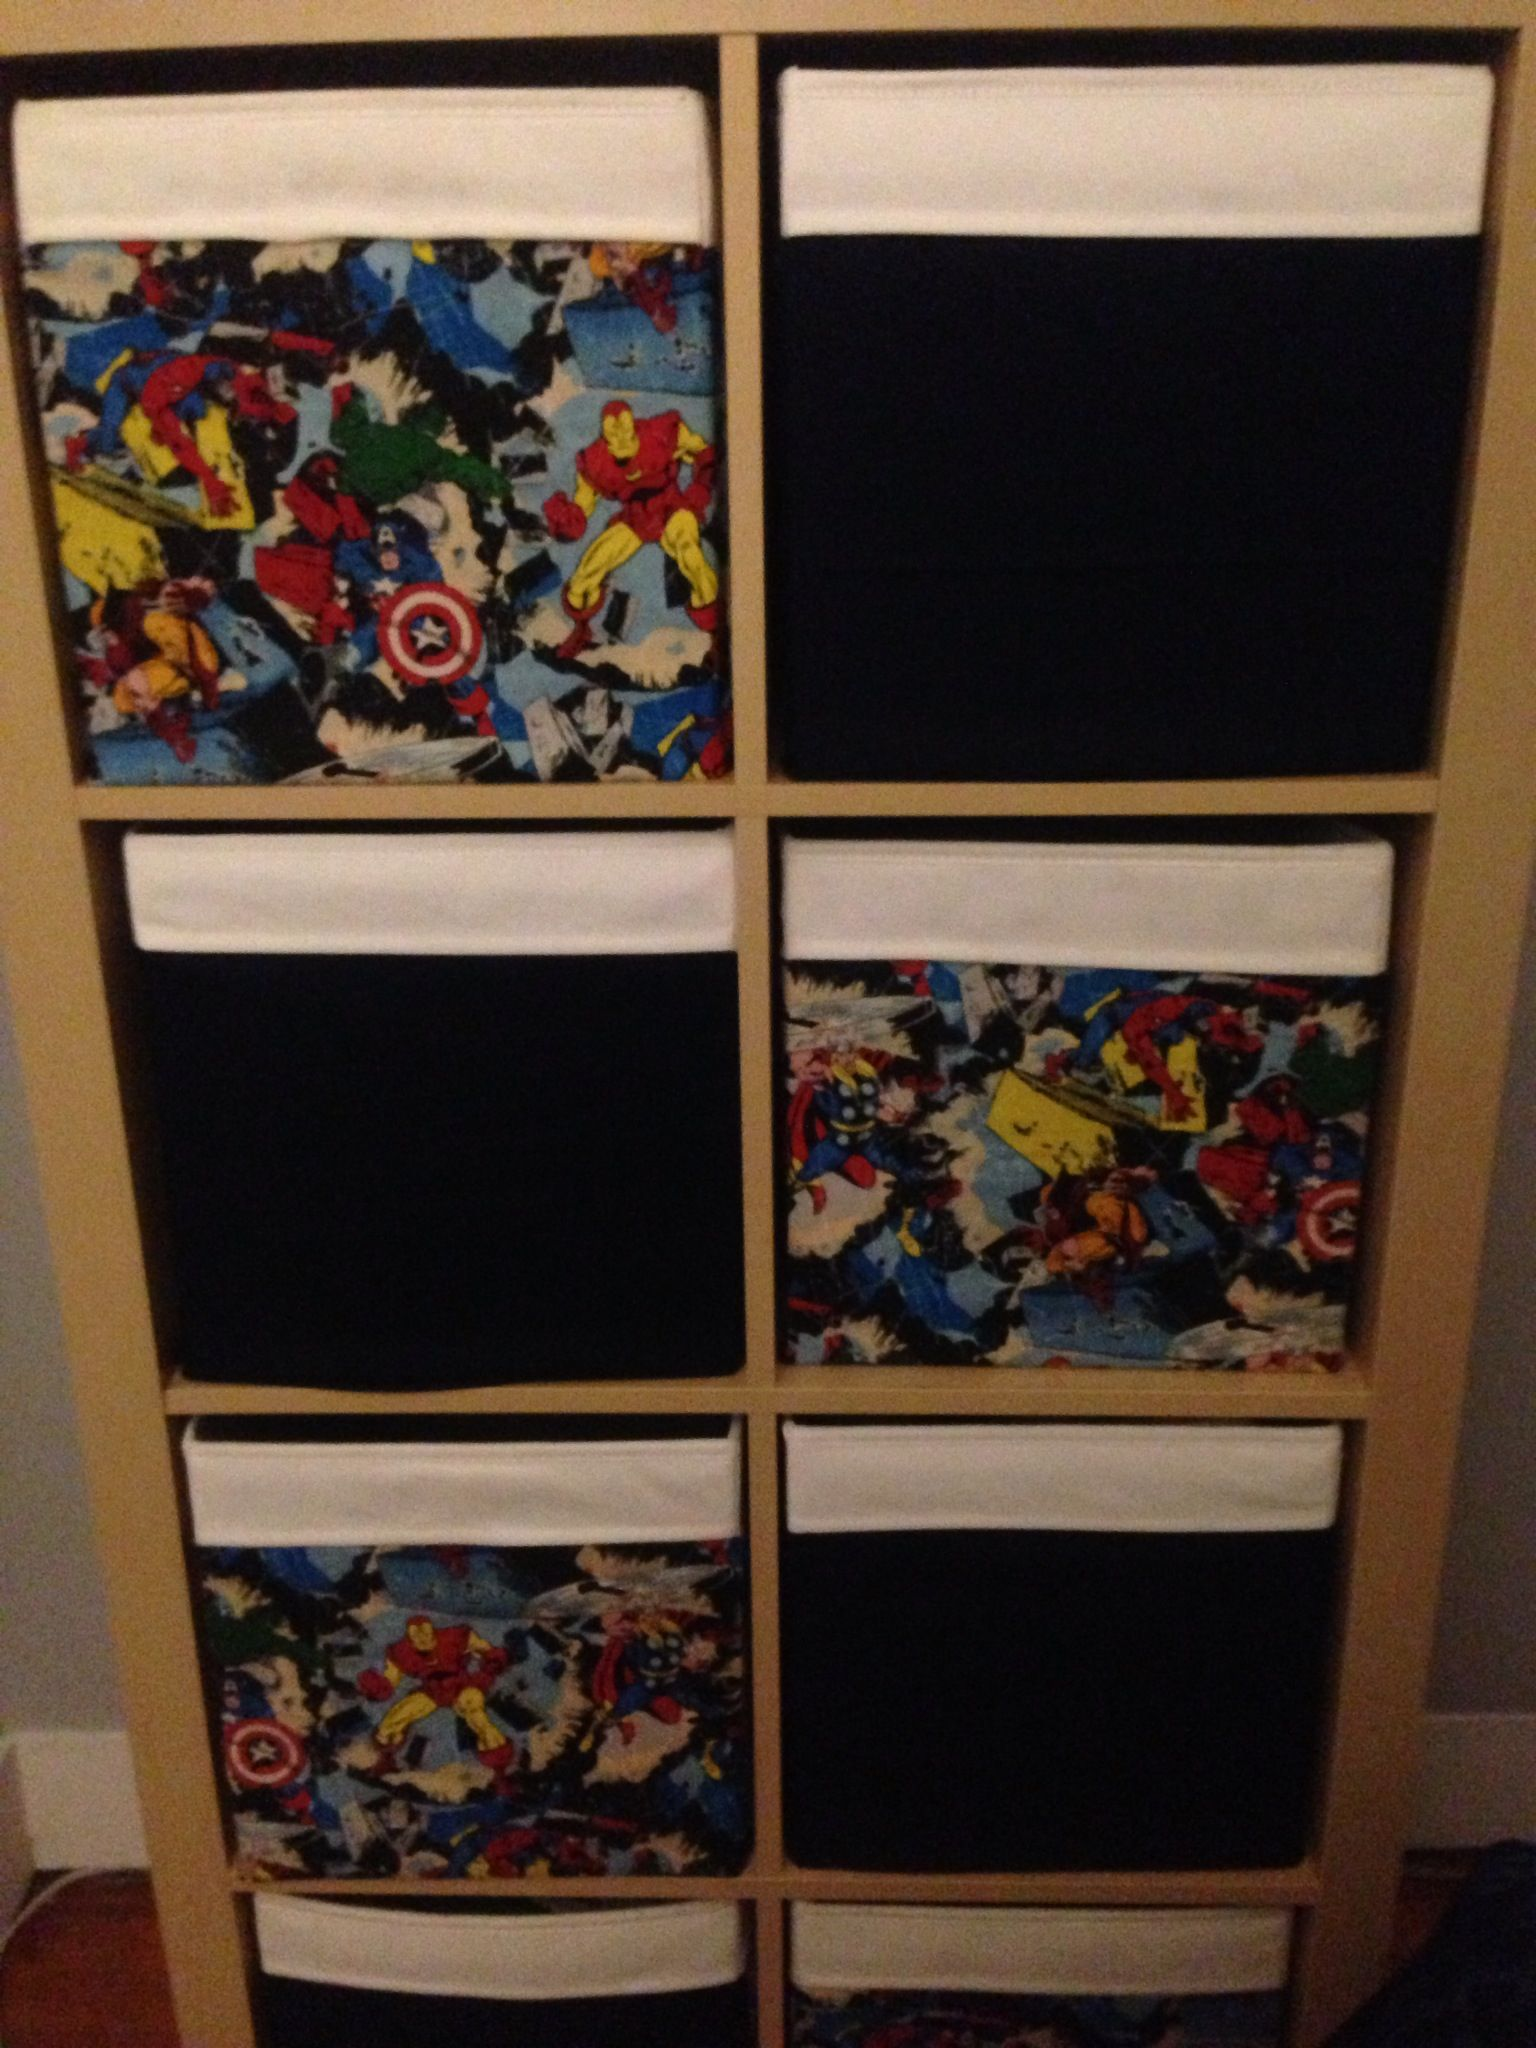 Dulux Avengers Bedroom In A Box: For My Sons Avengers Room - IKEA Drona Box